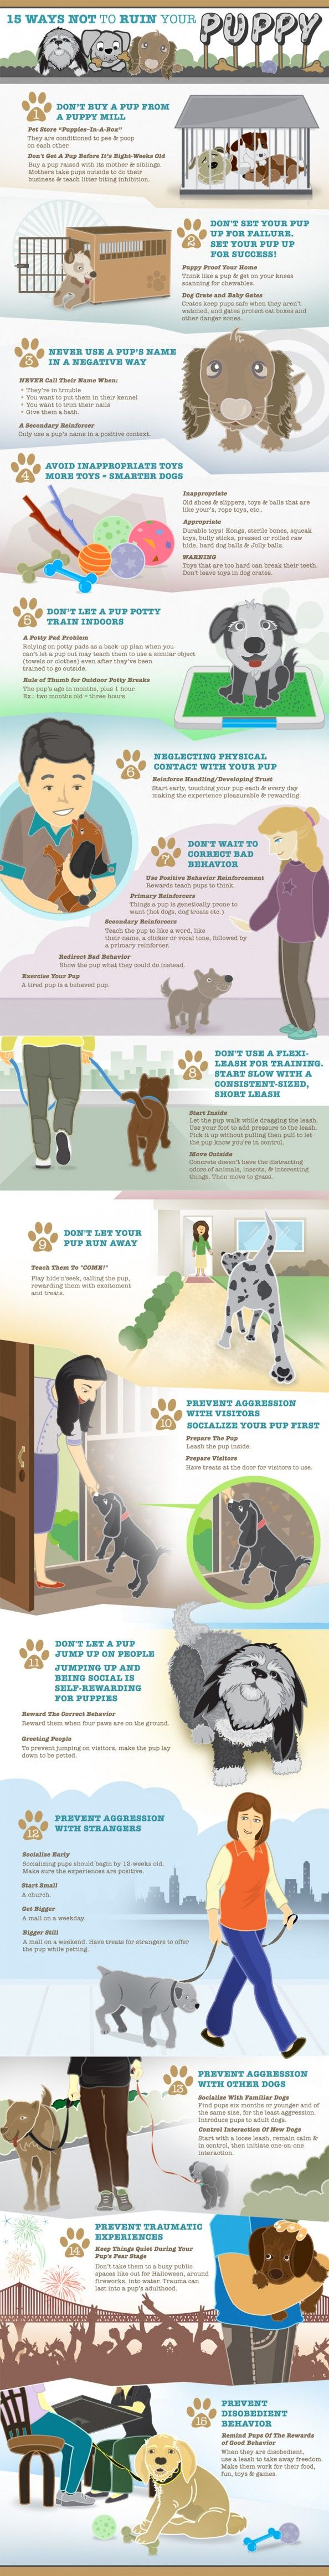 15 Ways Not to Ruin Your Puppy Infographic